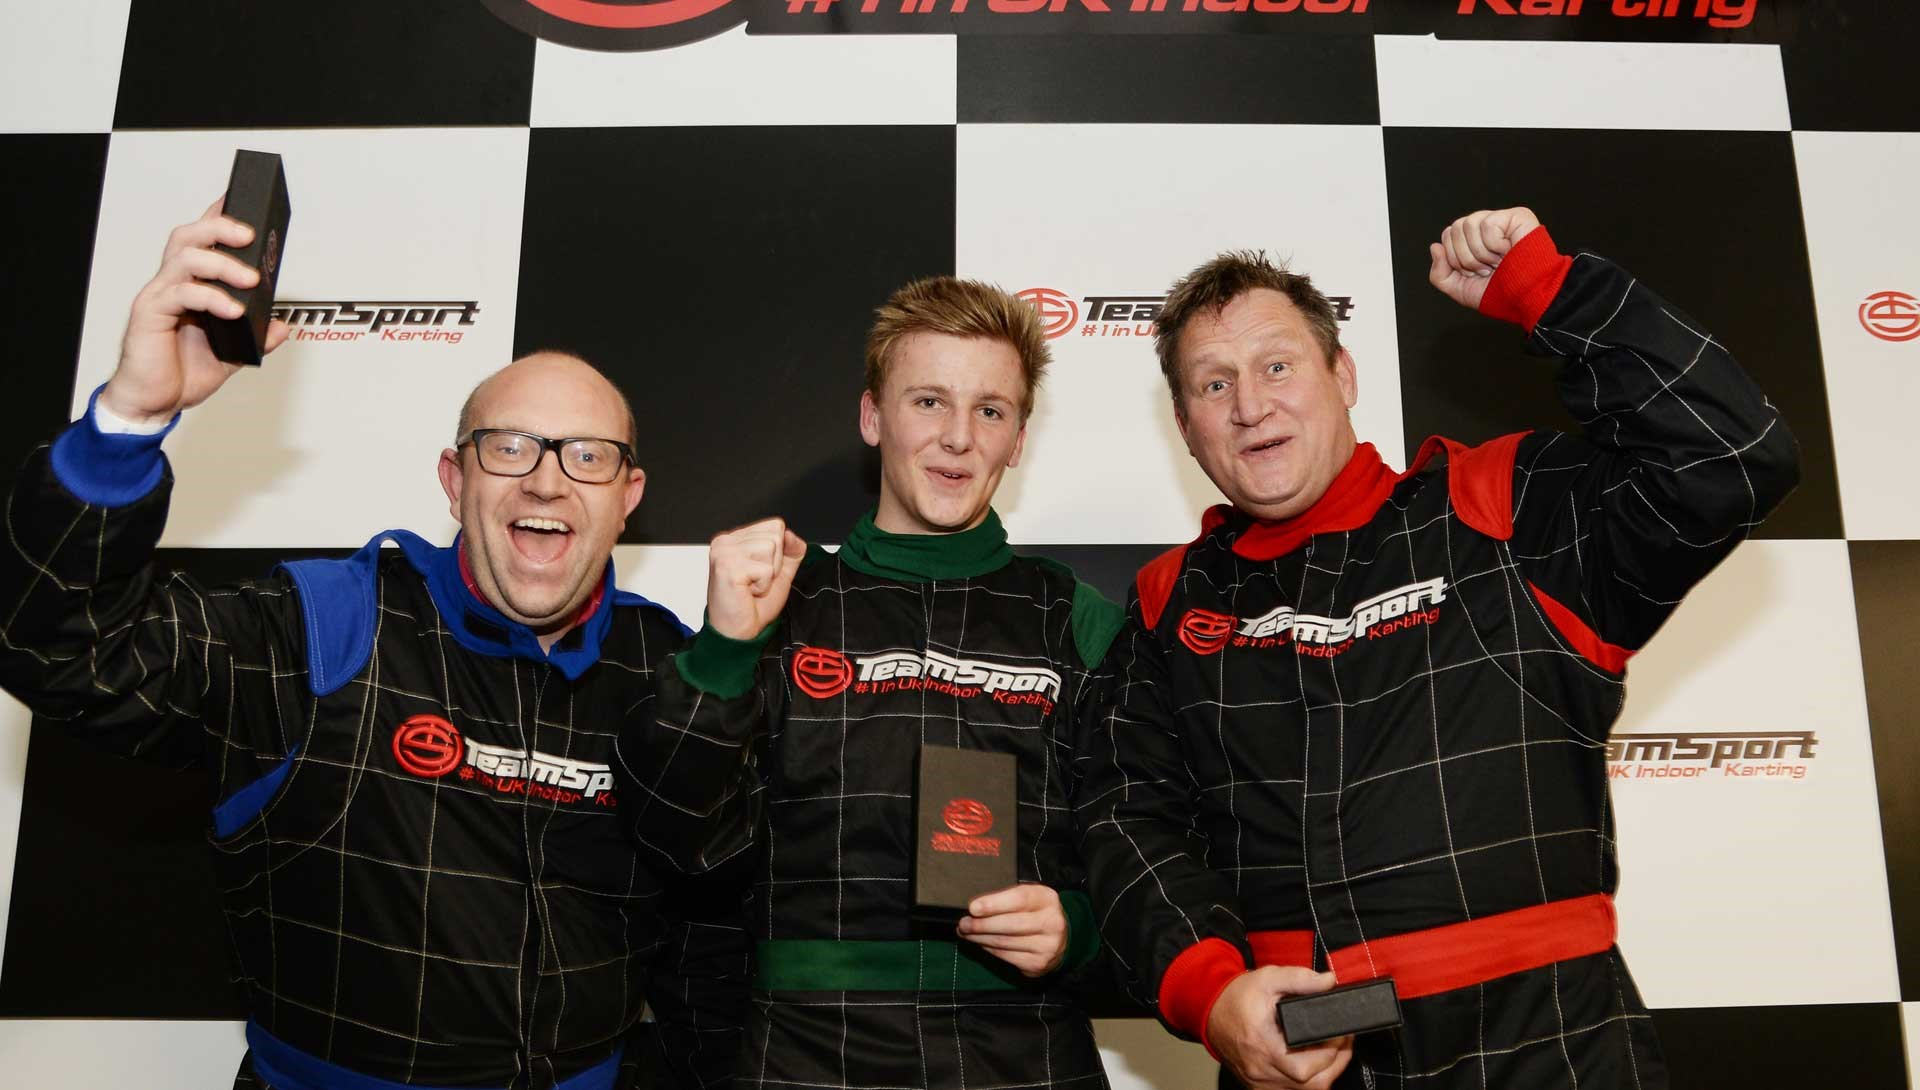 TeamSport_Gallery_Go_karting_Crawley_1920x1090-min_3.jpg